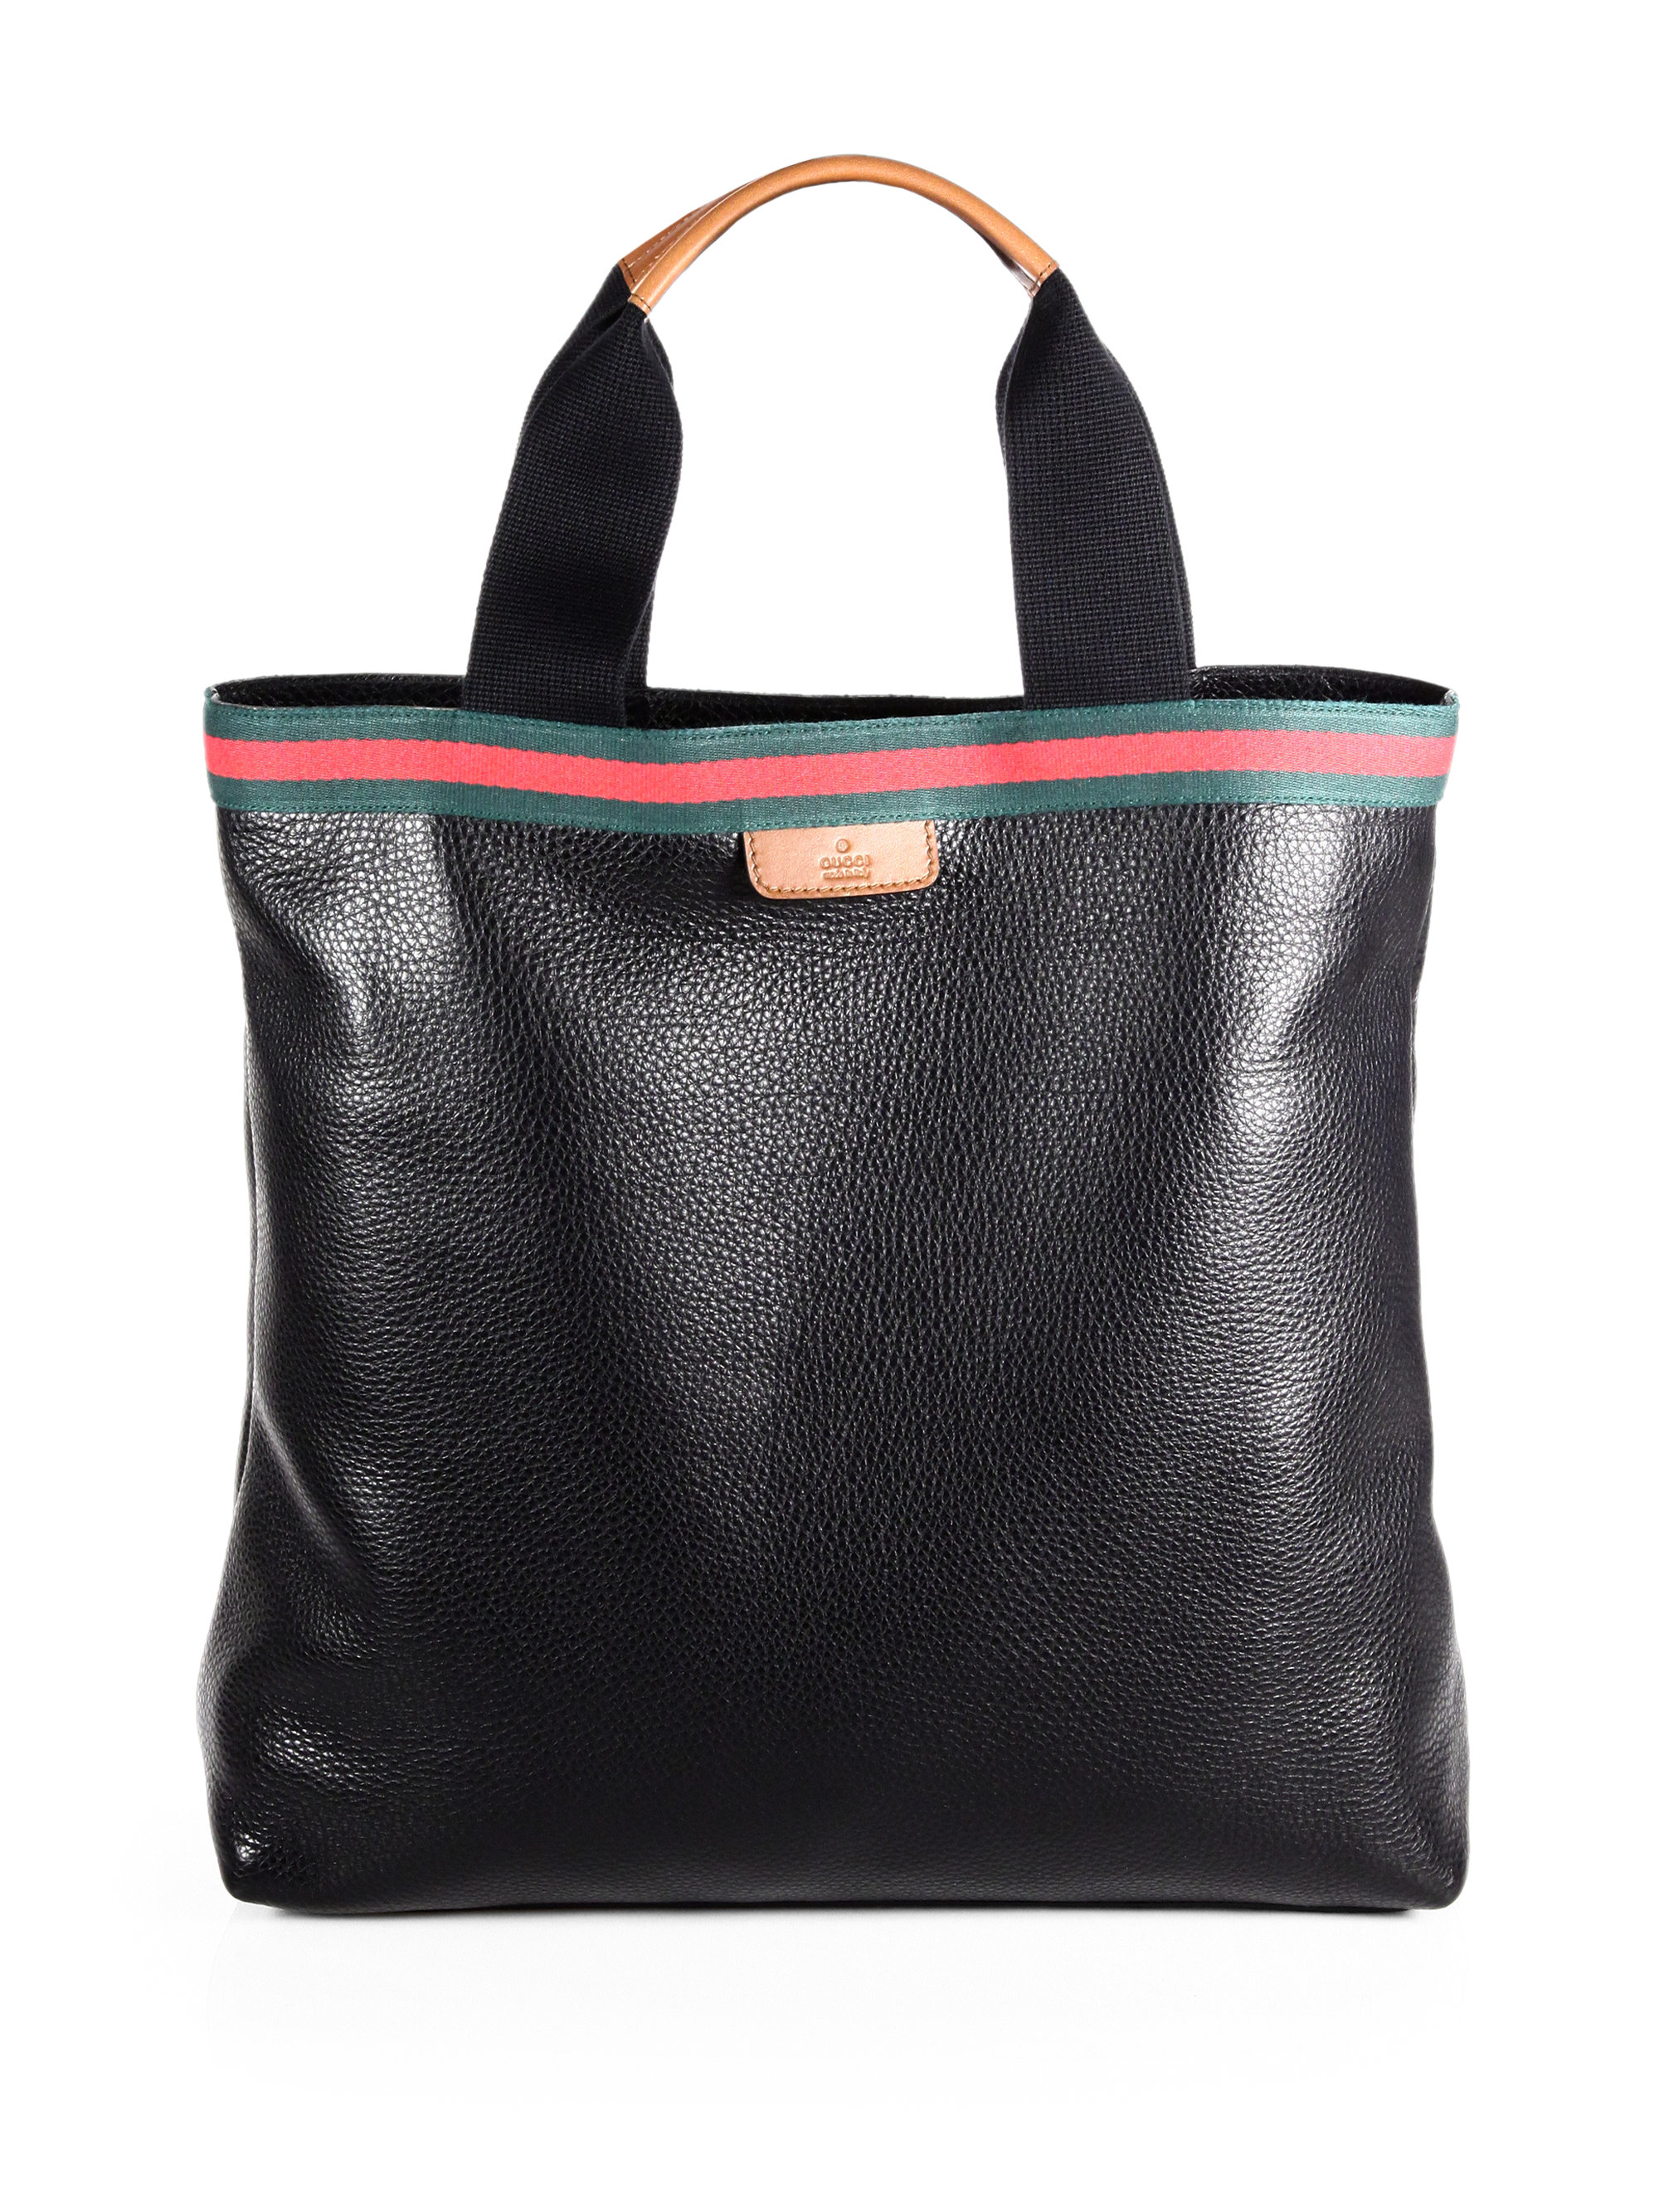 Gucci Cannes Tote Bag In Black For Men Lyst